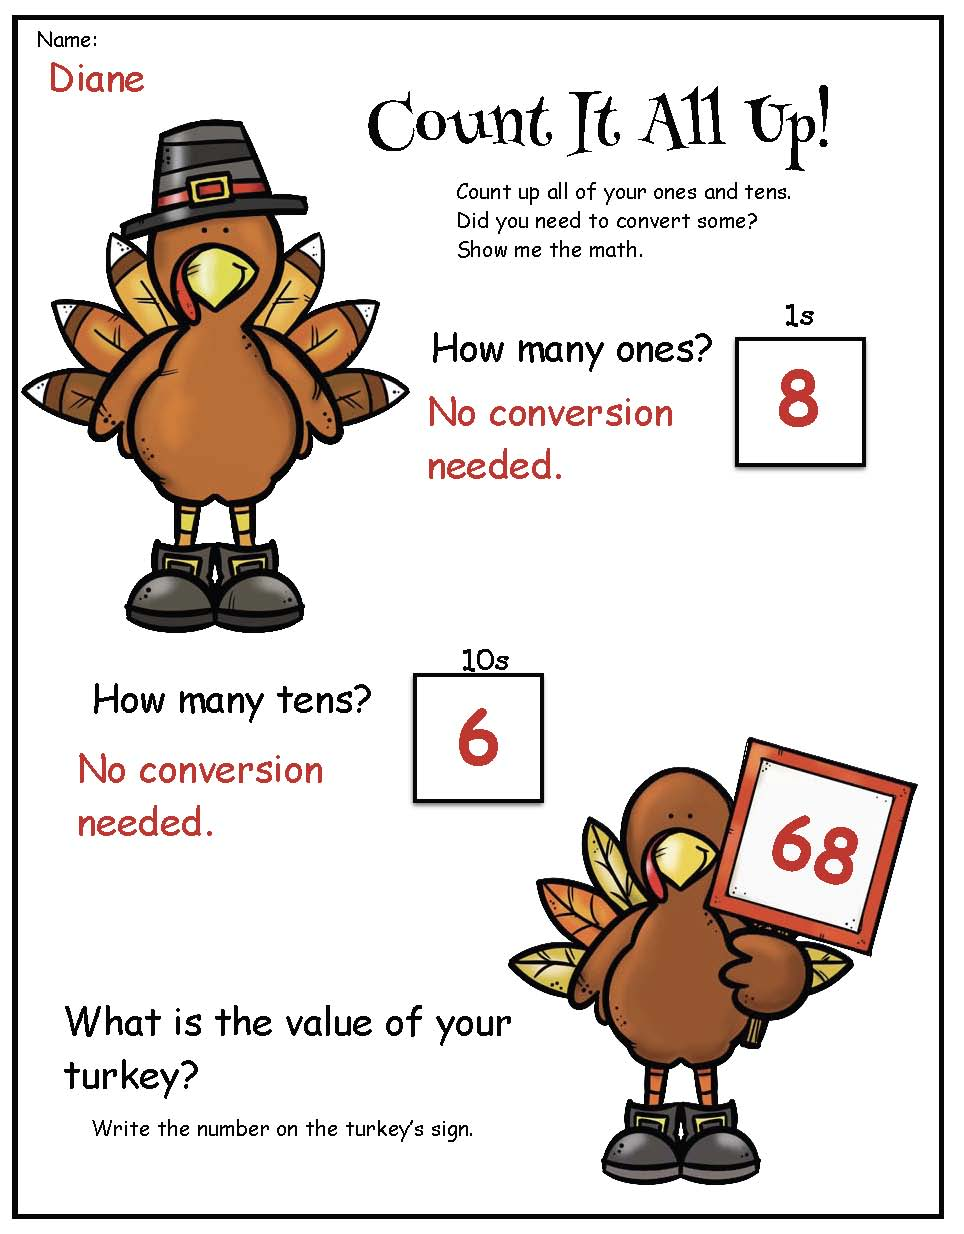 place value activities, Thanksgiving crafts, turkey crafts, November math activities, turkey bulletin board ideas, November bulletin board ideas